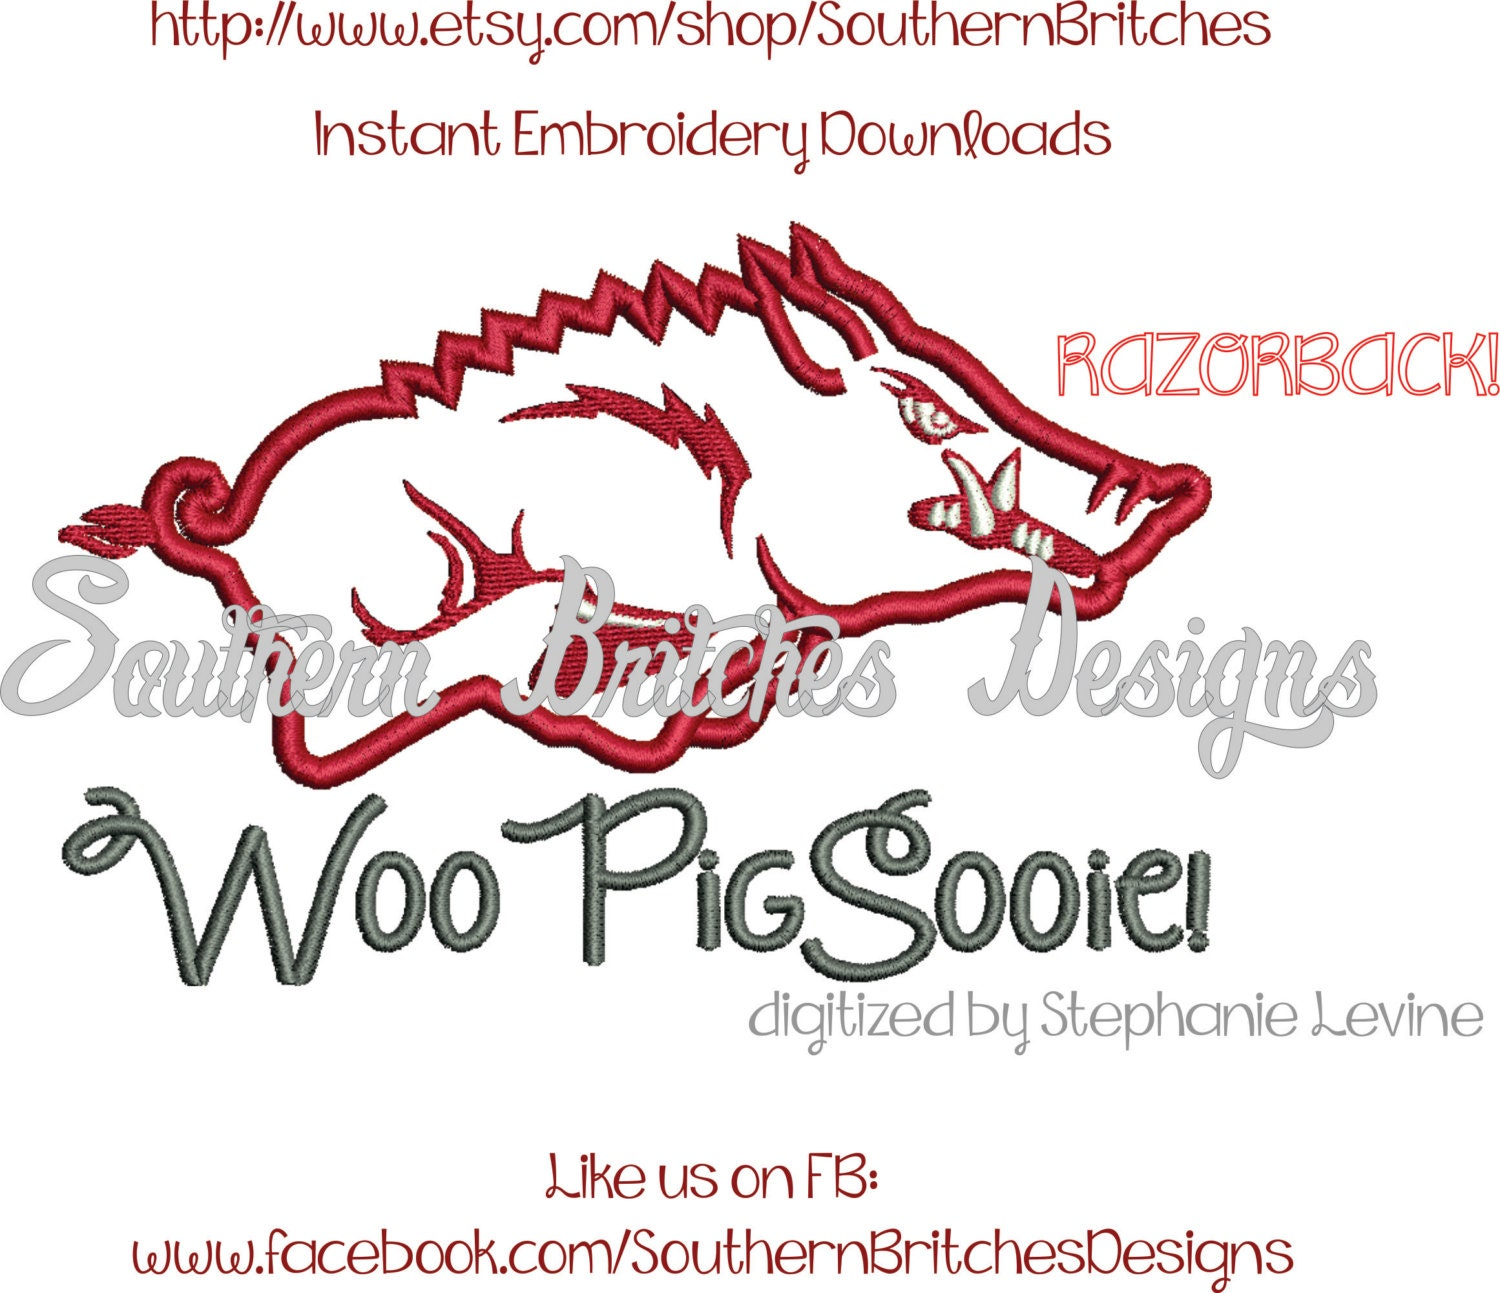 court home arkansas razorbacks mat runner university products zokee basketball area of decor razorback